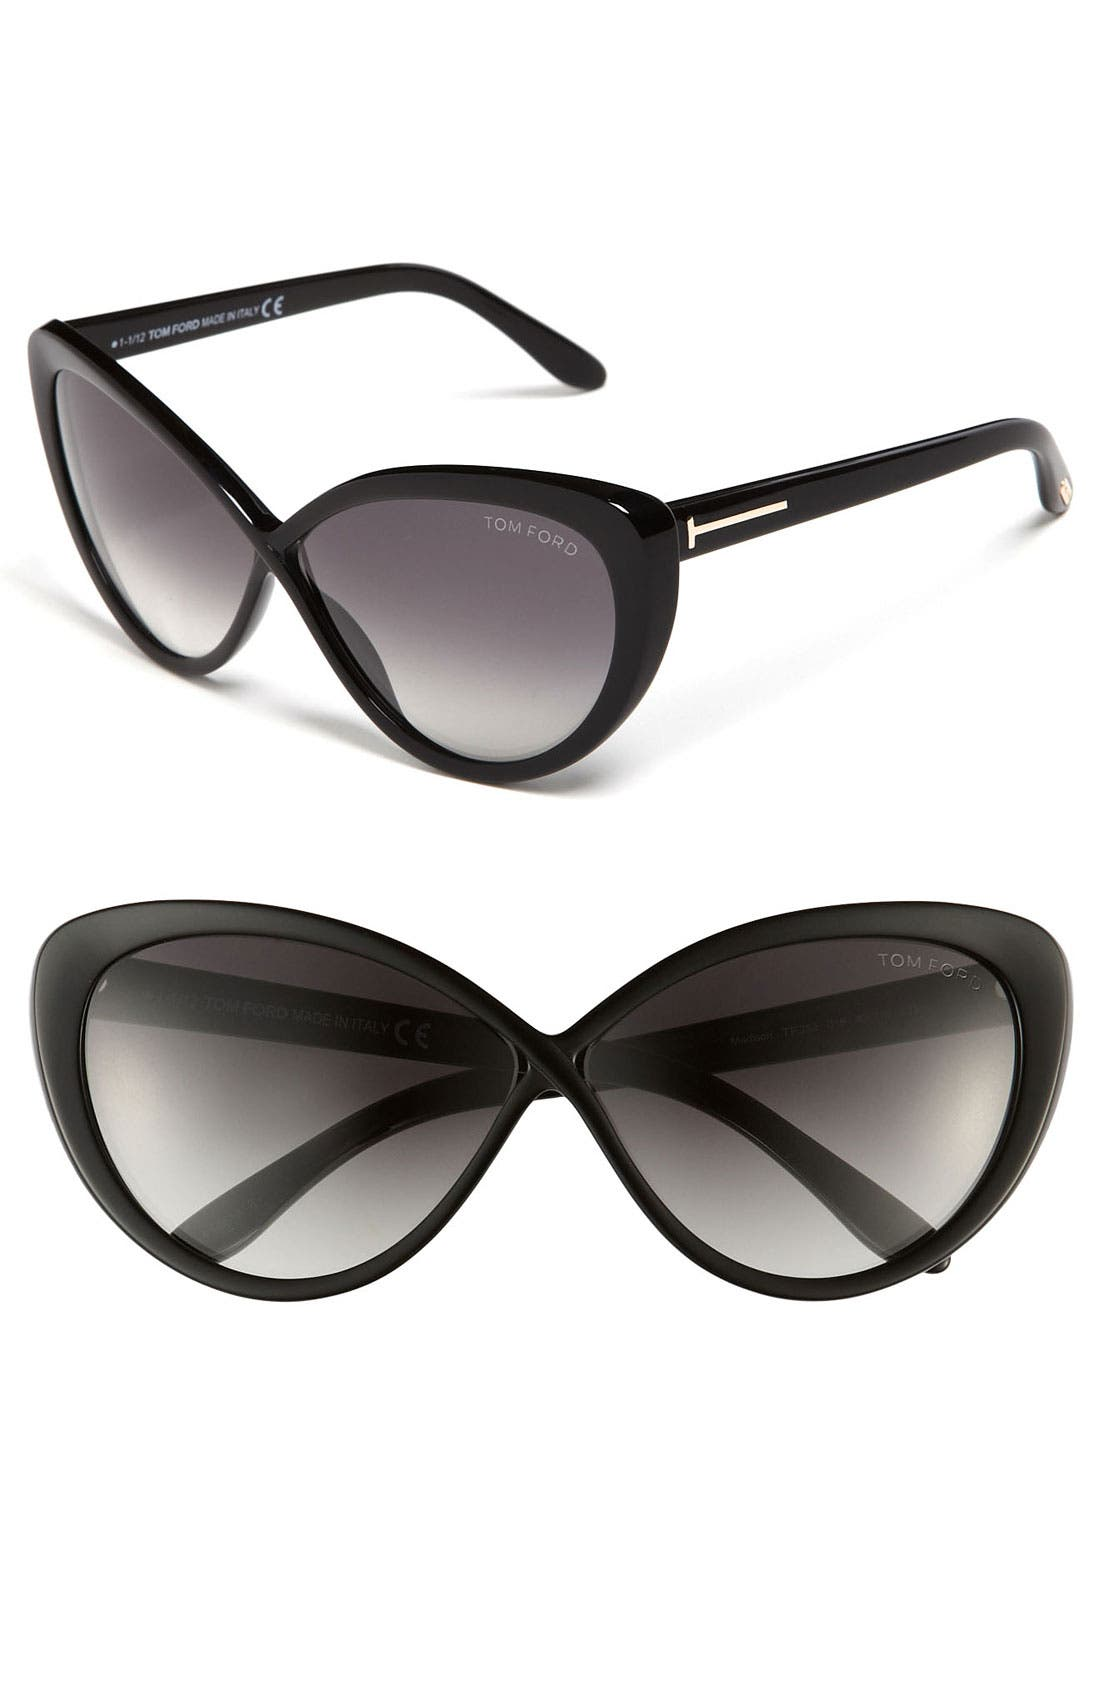 Main Image - Tom Ford 'Madison' 63mm Retro Sunglasses